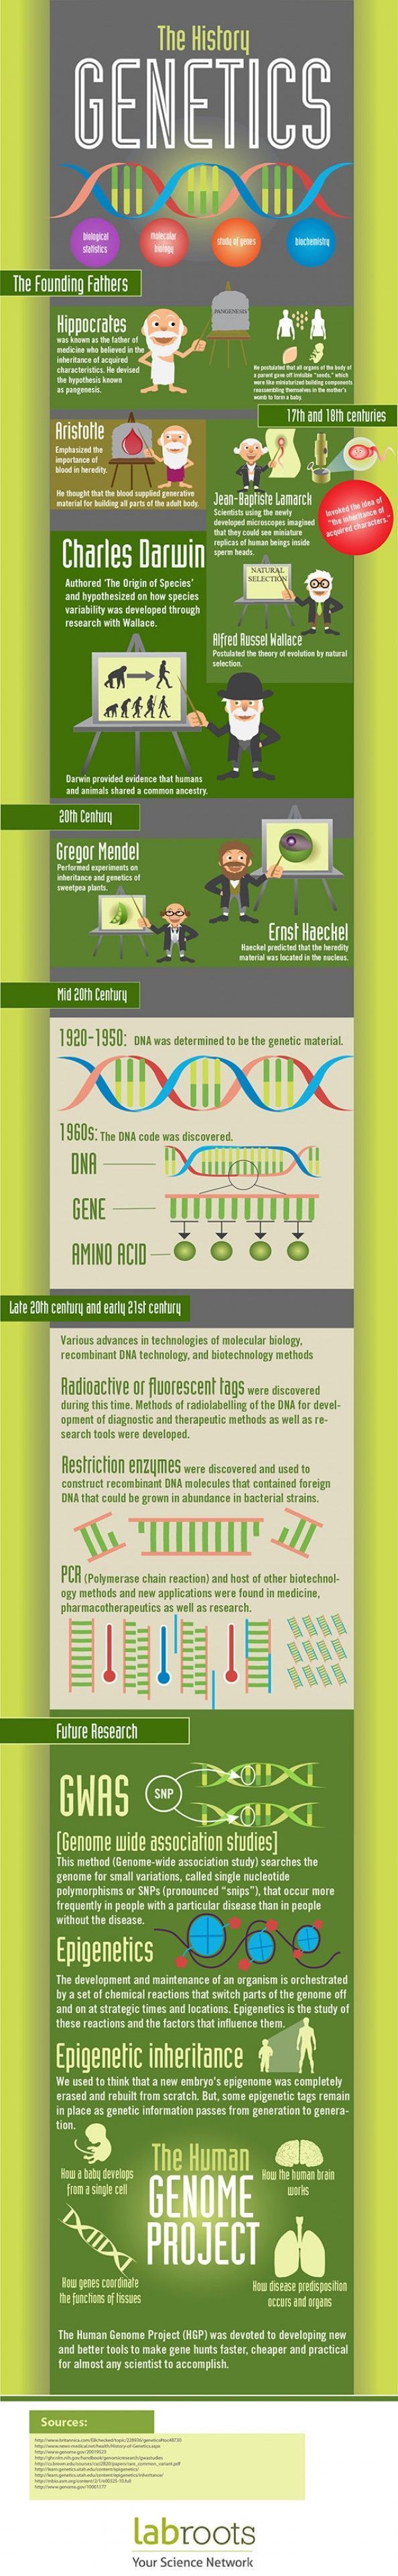 ☤ MD ☞☆☆☆ The History of Genetics Infographic.